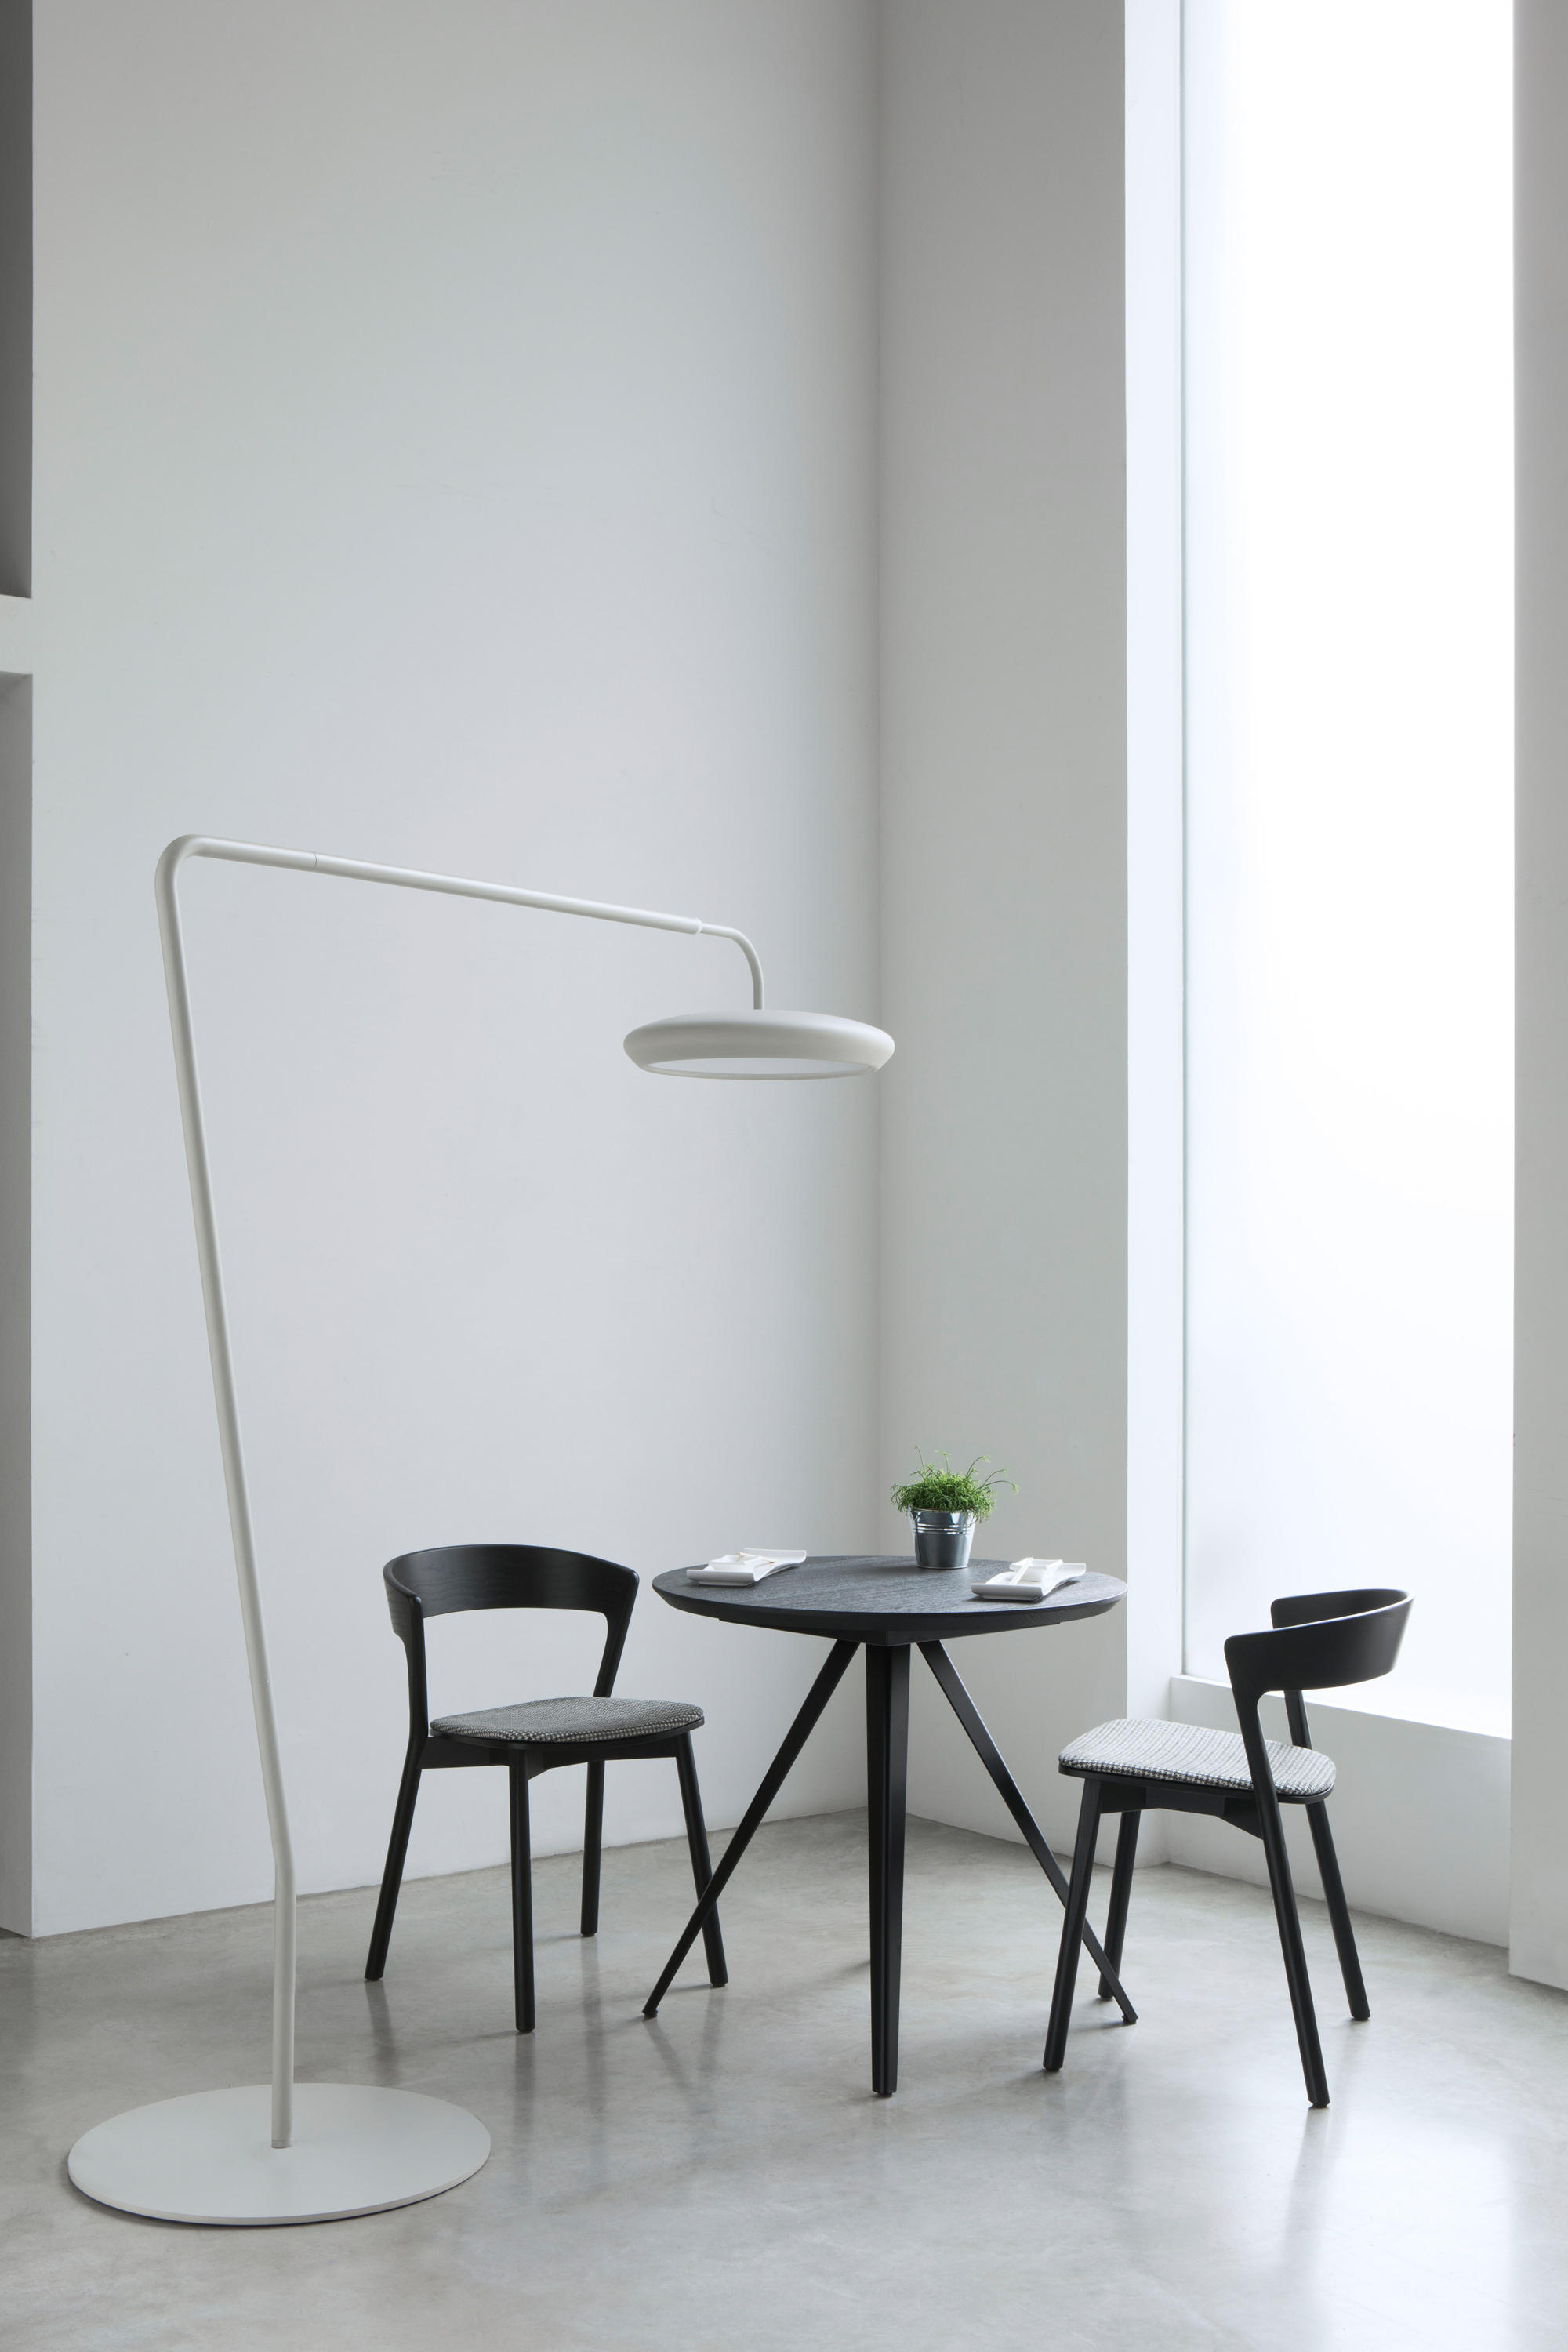 aki contract table 0098 3 cafeteria tables from traba architonic